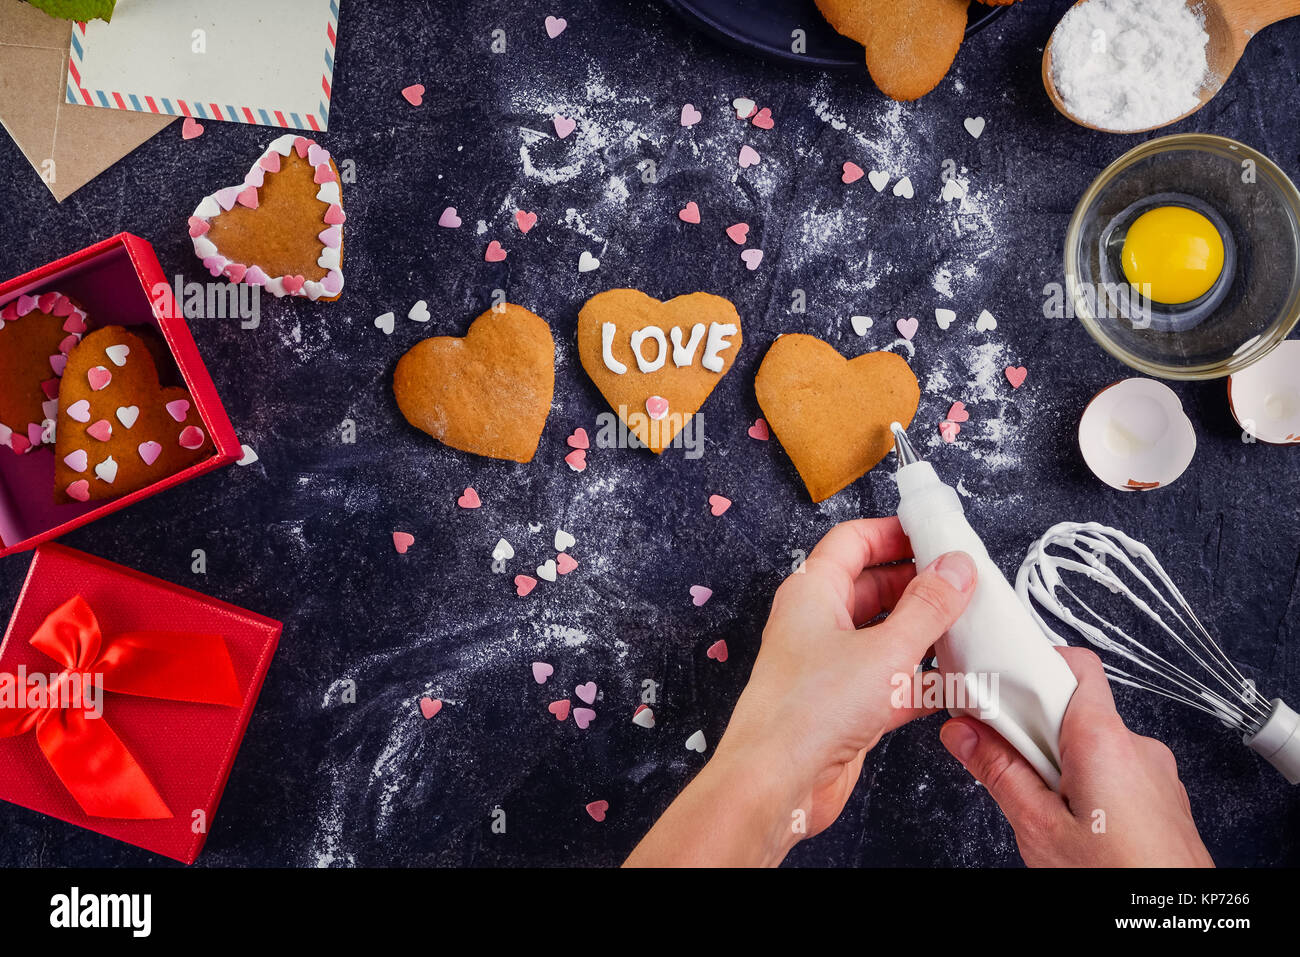 Como Decorar Galletas De Corazon Vista Superior Manos Femeninas Decorar Galletas Caseras En Forma